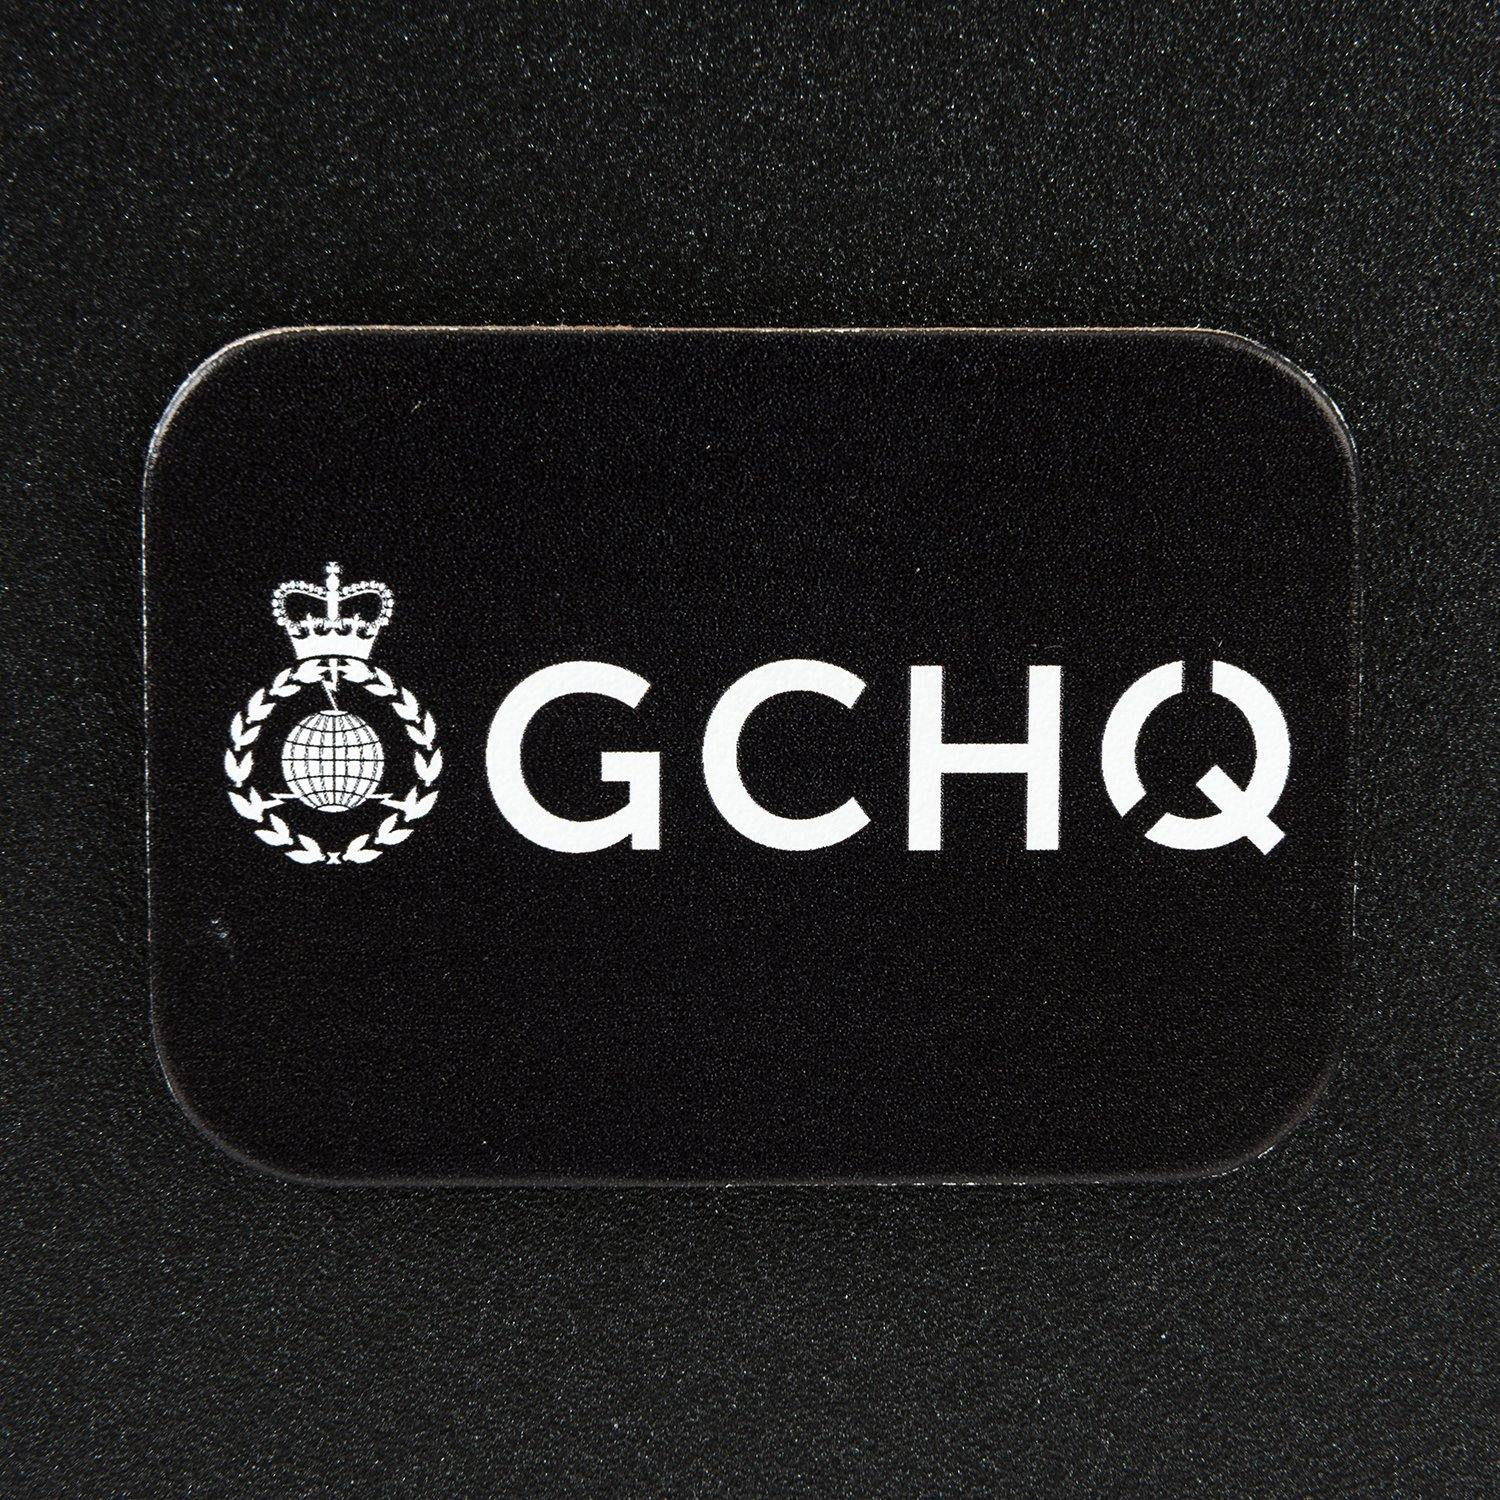 Science Museum GCHQ Magnet2